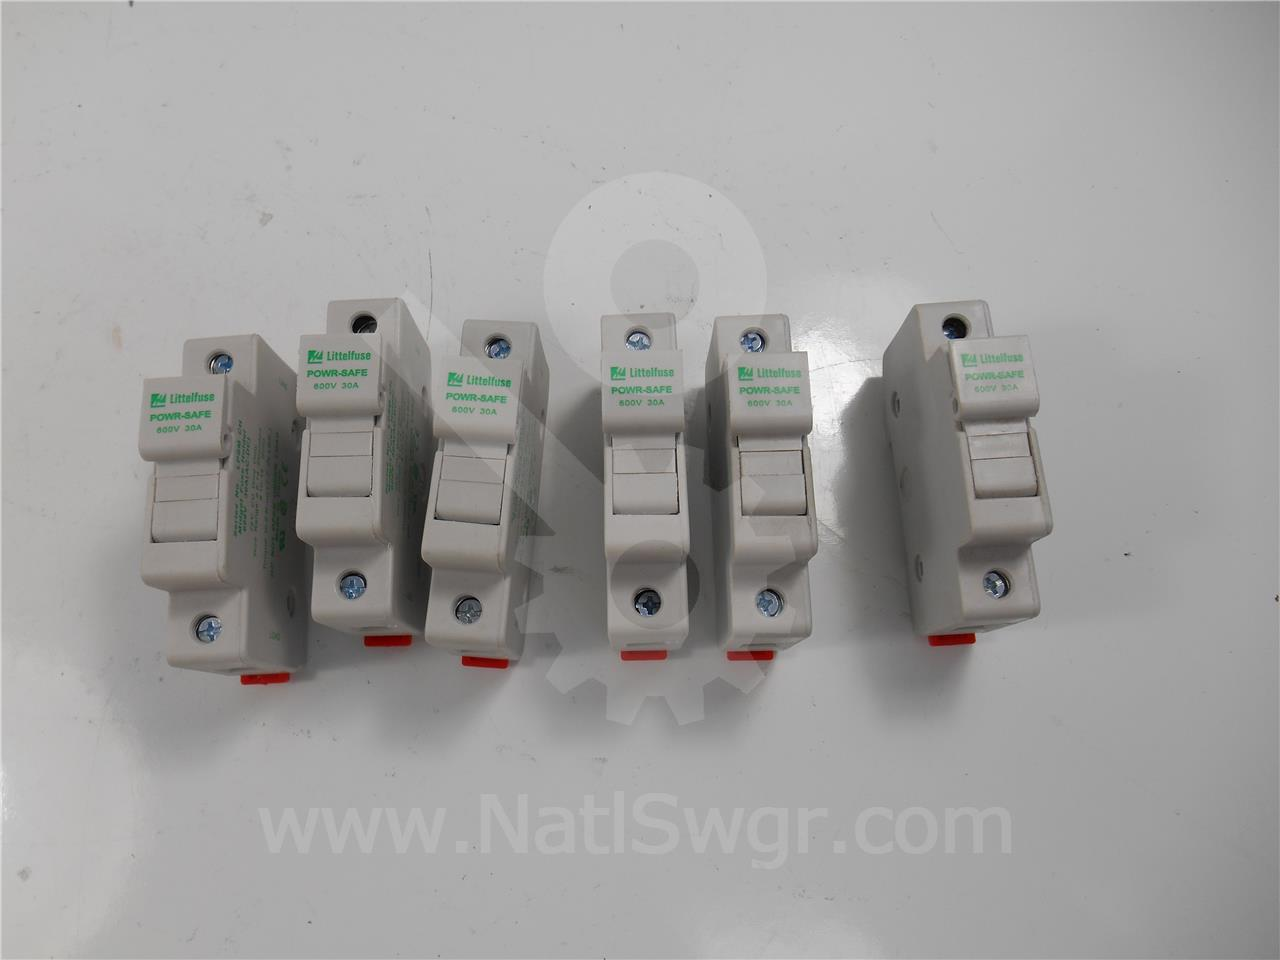 Fuses Types Of Littelfuse Little Fuse 30a Midget Holder